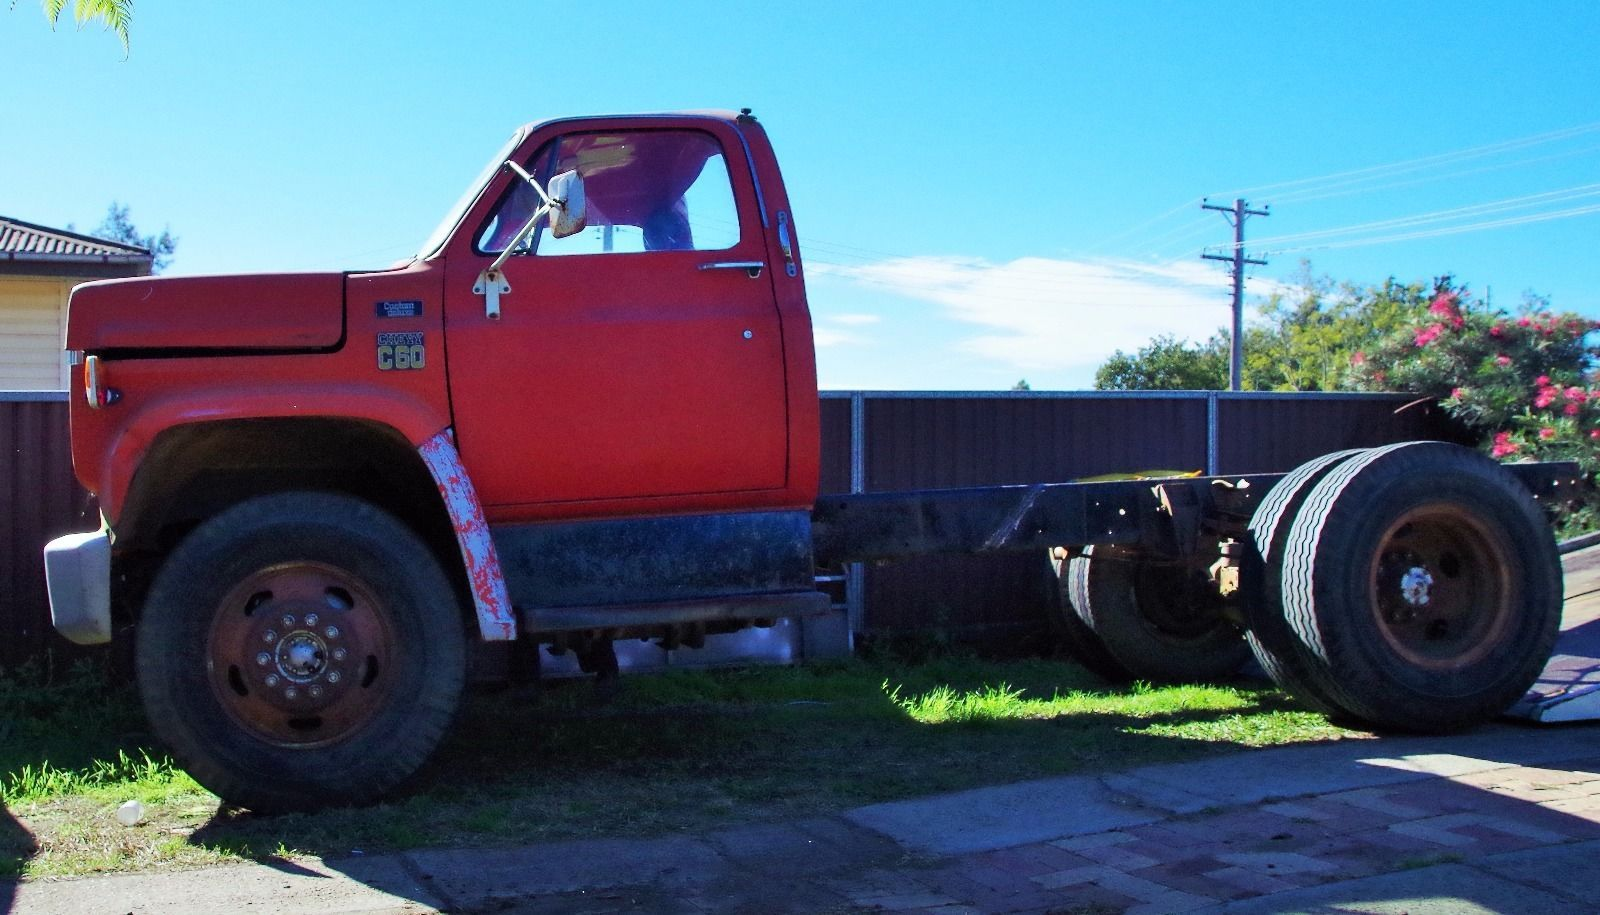 1978 chevy c60 truck with a shortened chassis this was the heaviest truck available from